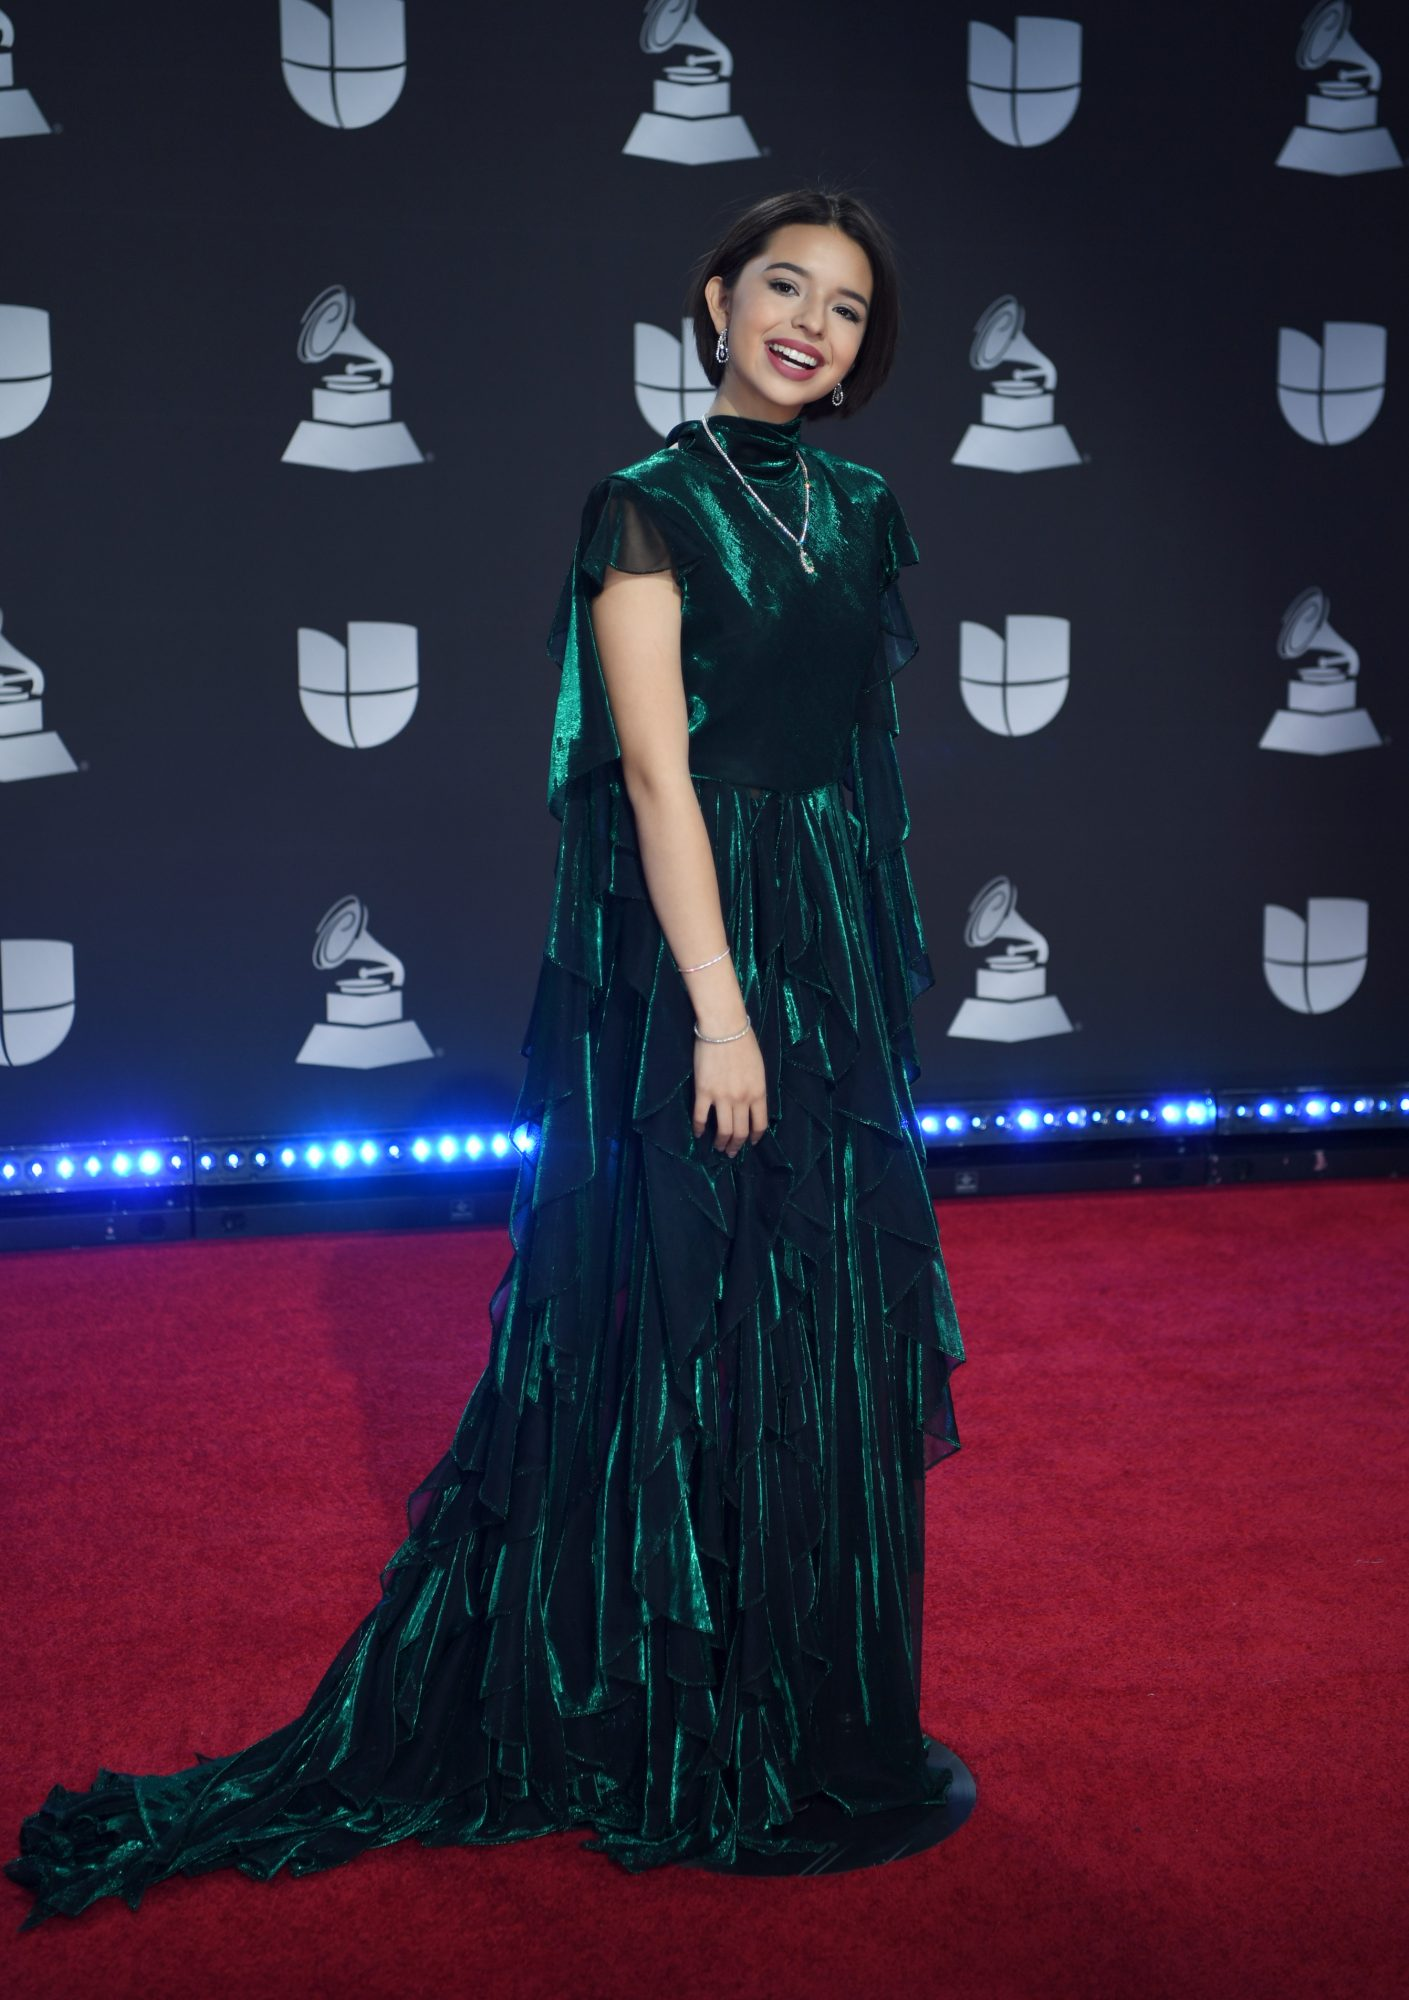 The 20th Annual Latin GRAMMY Awards - Arrivals